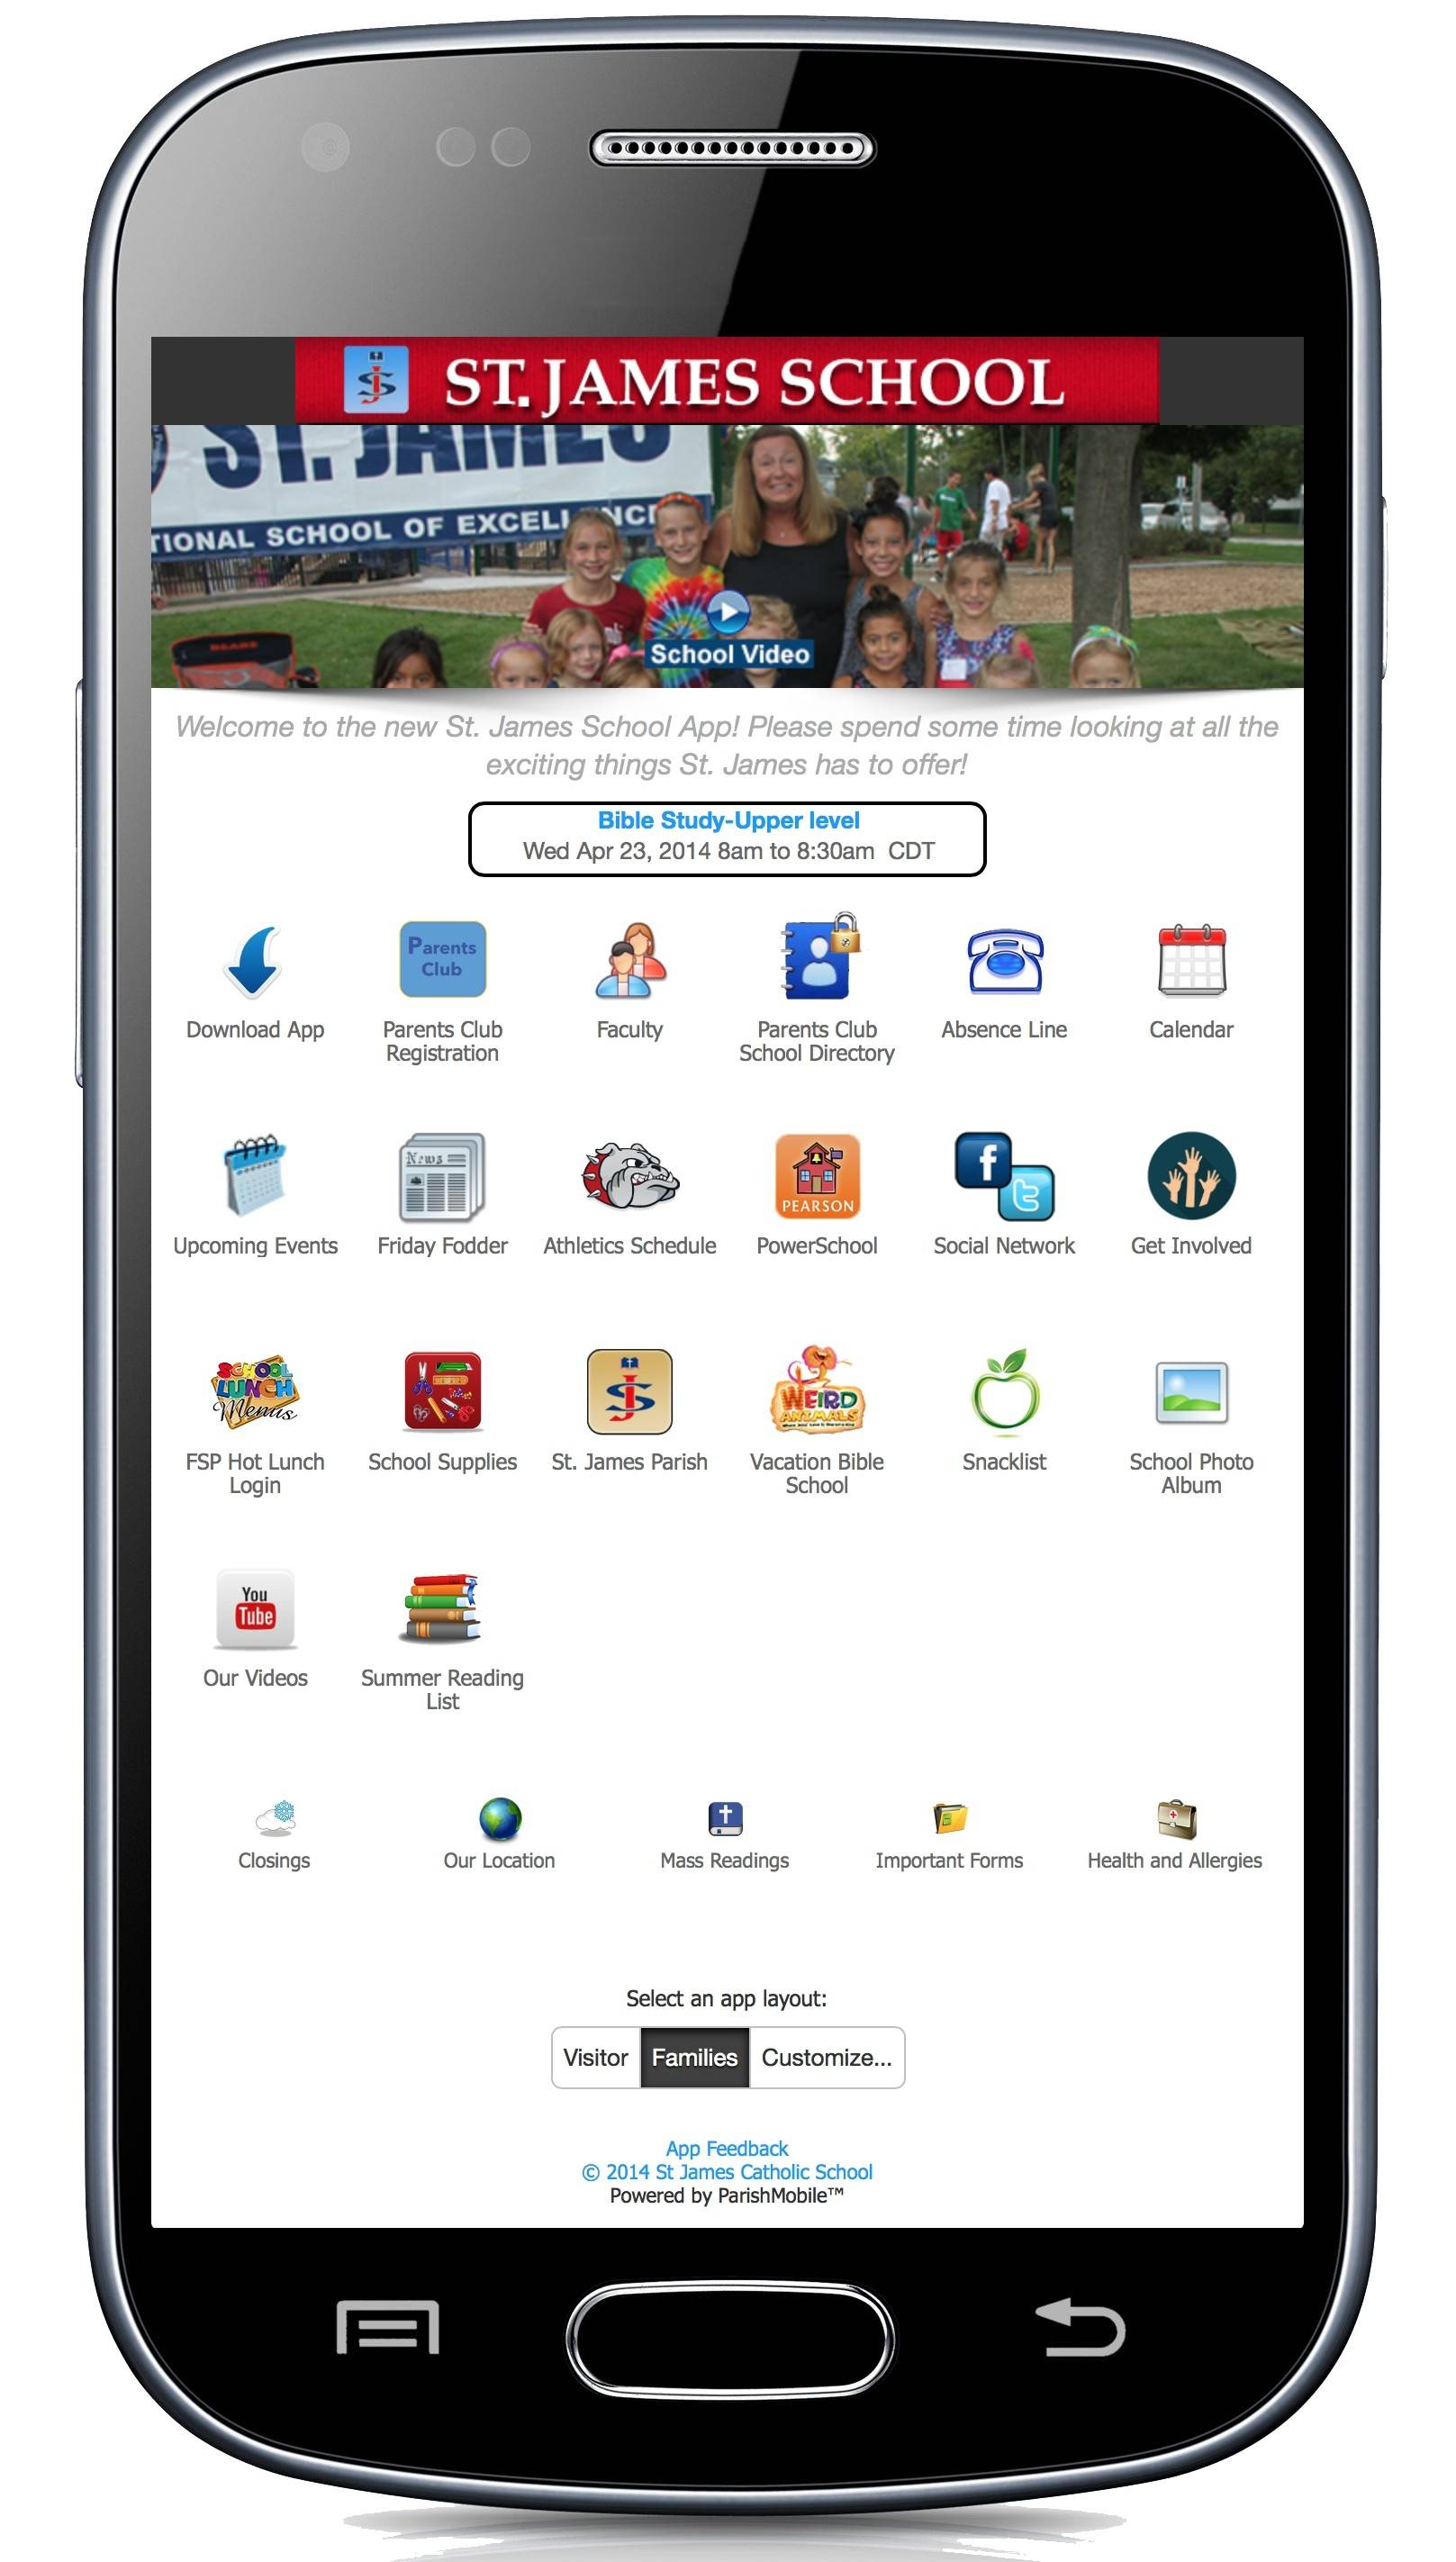 New mobile application gives families easy access to keep up and interact with St. James School.